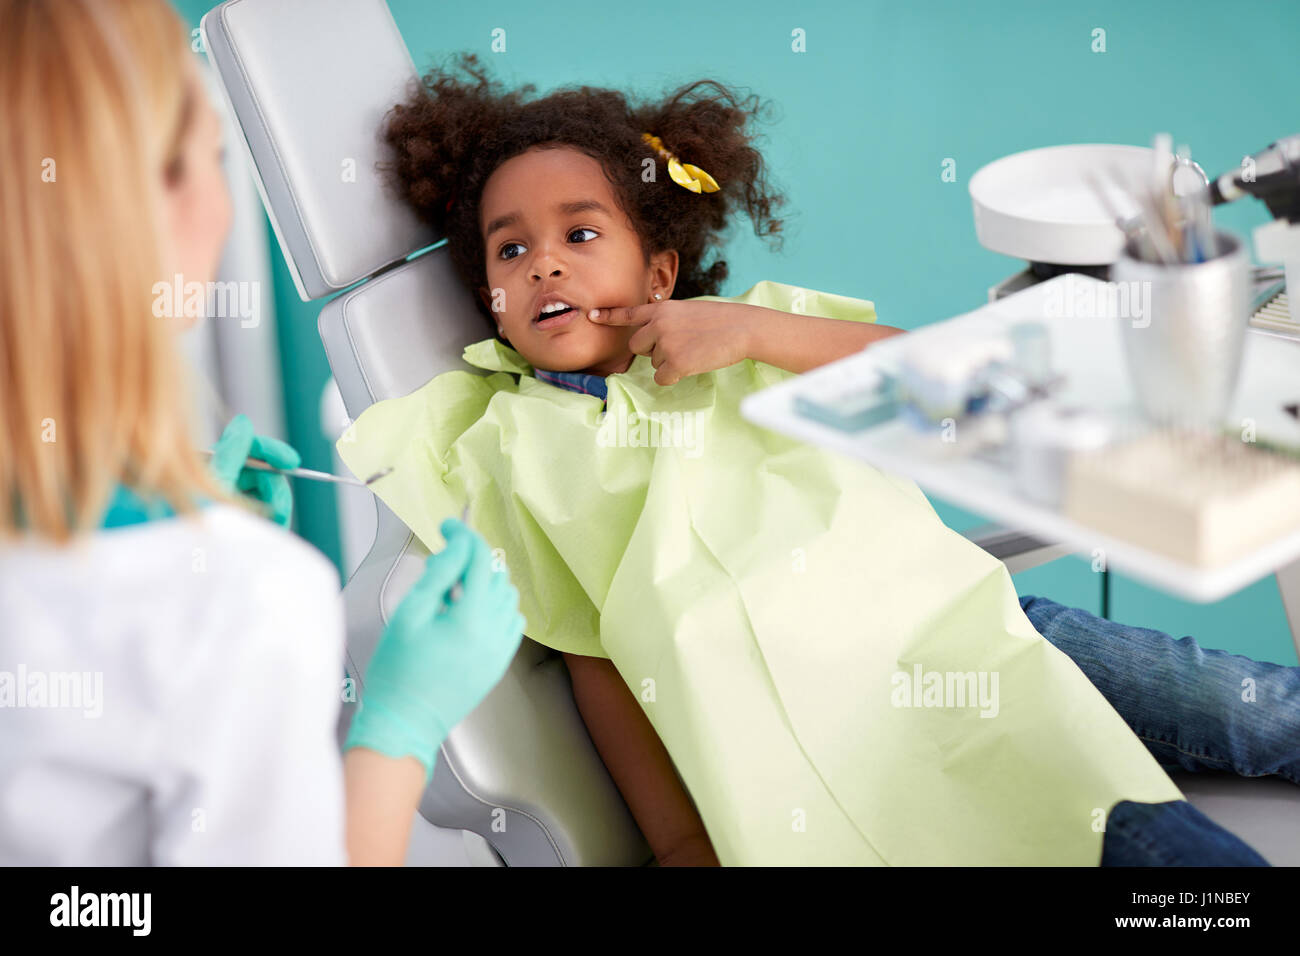 Very cute black kid in dental chair showing aching tooth - Stock Image